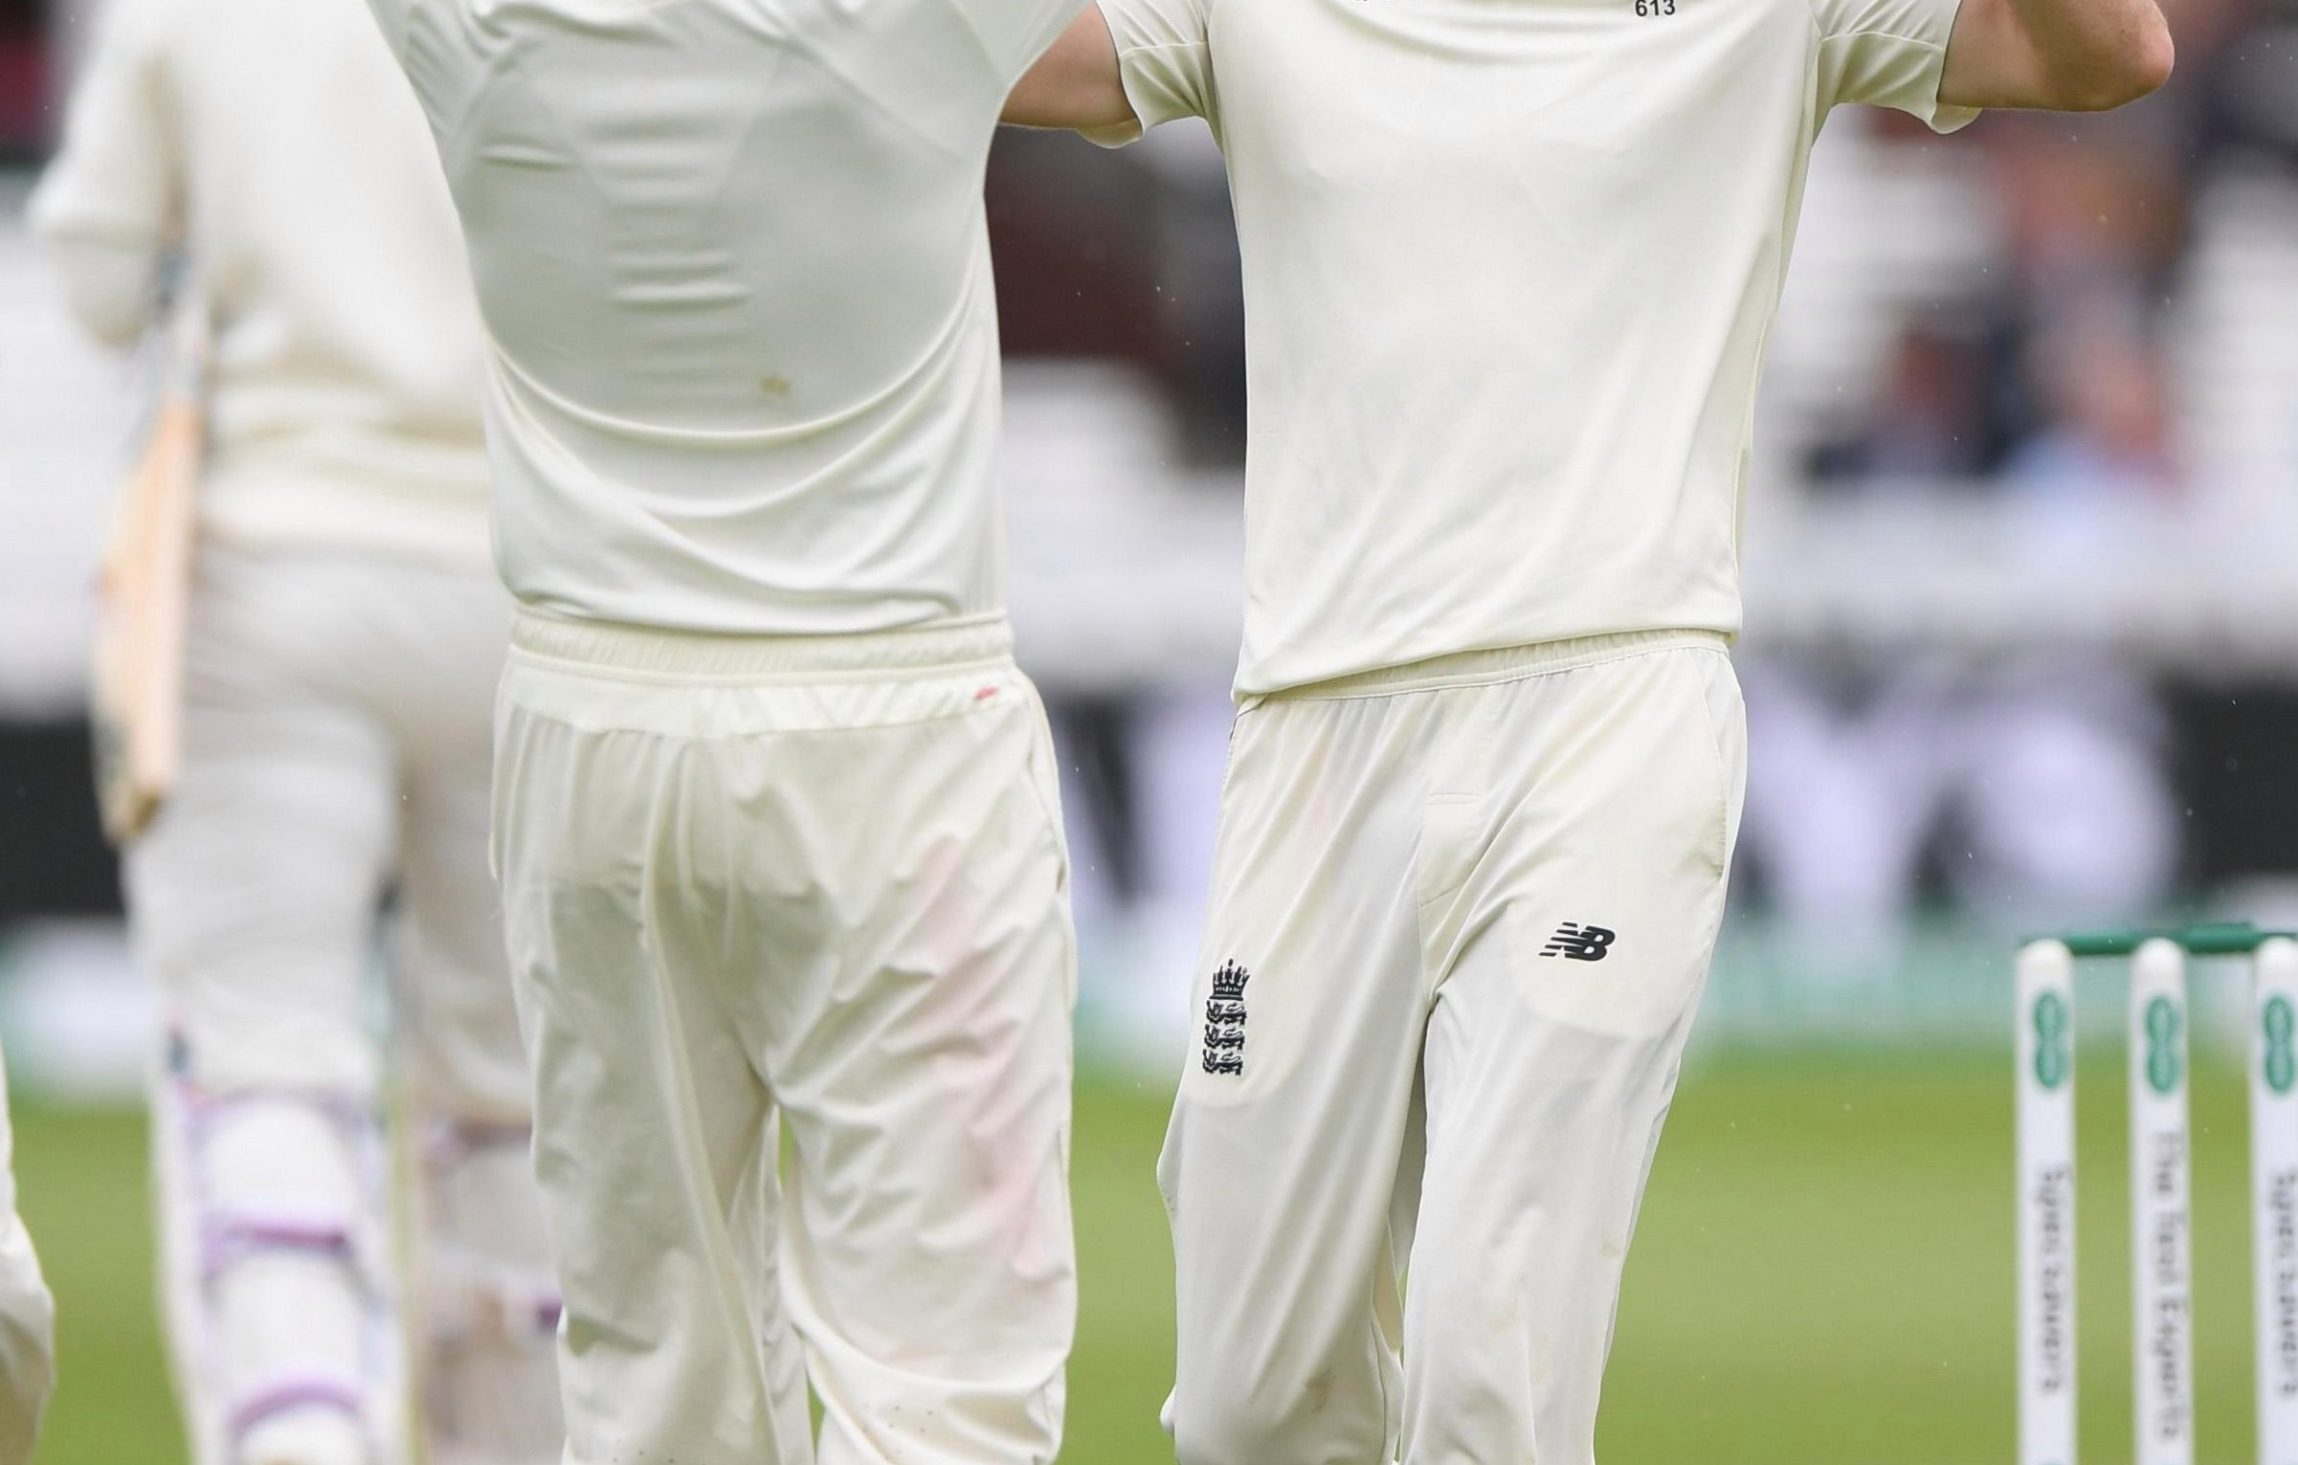 Joe Root is first to salute James Anderson as the pace legend dismisses Lokesh Rahul on the way to another amazing milestone - 100 Test wickets at Lord's